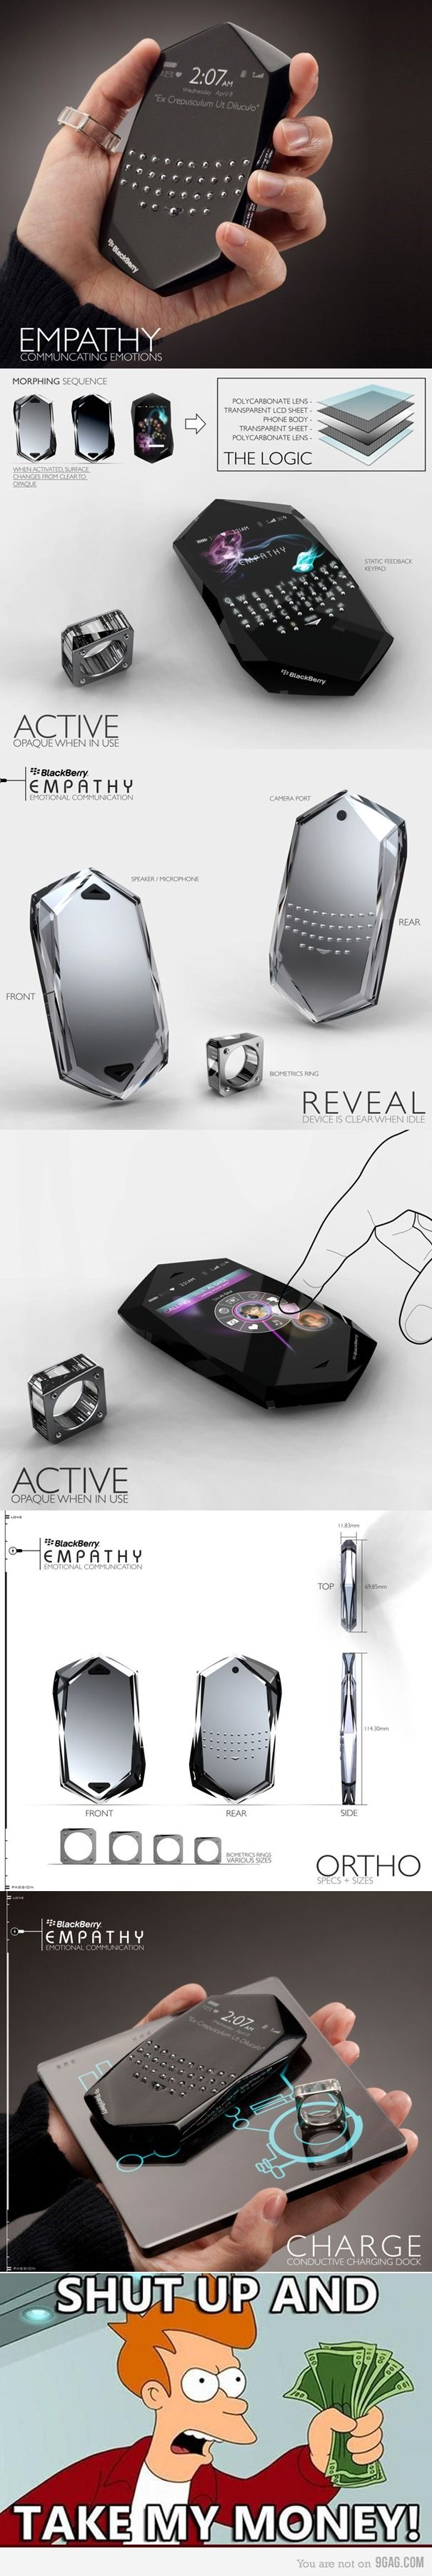 Even if it's a blackberry.. shut up and take my money!